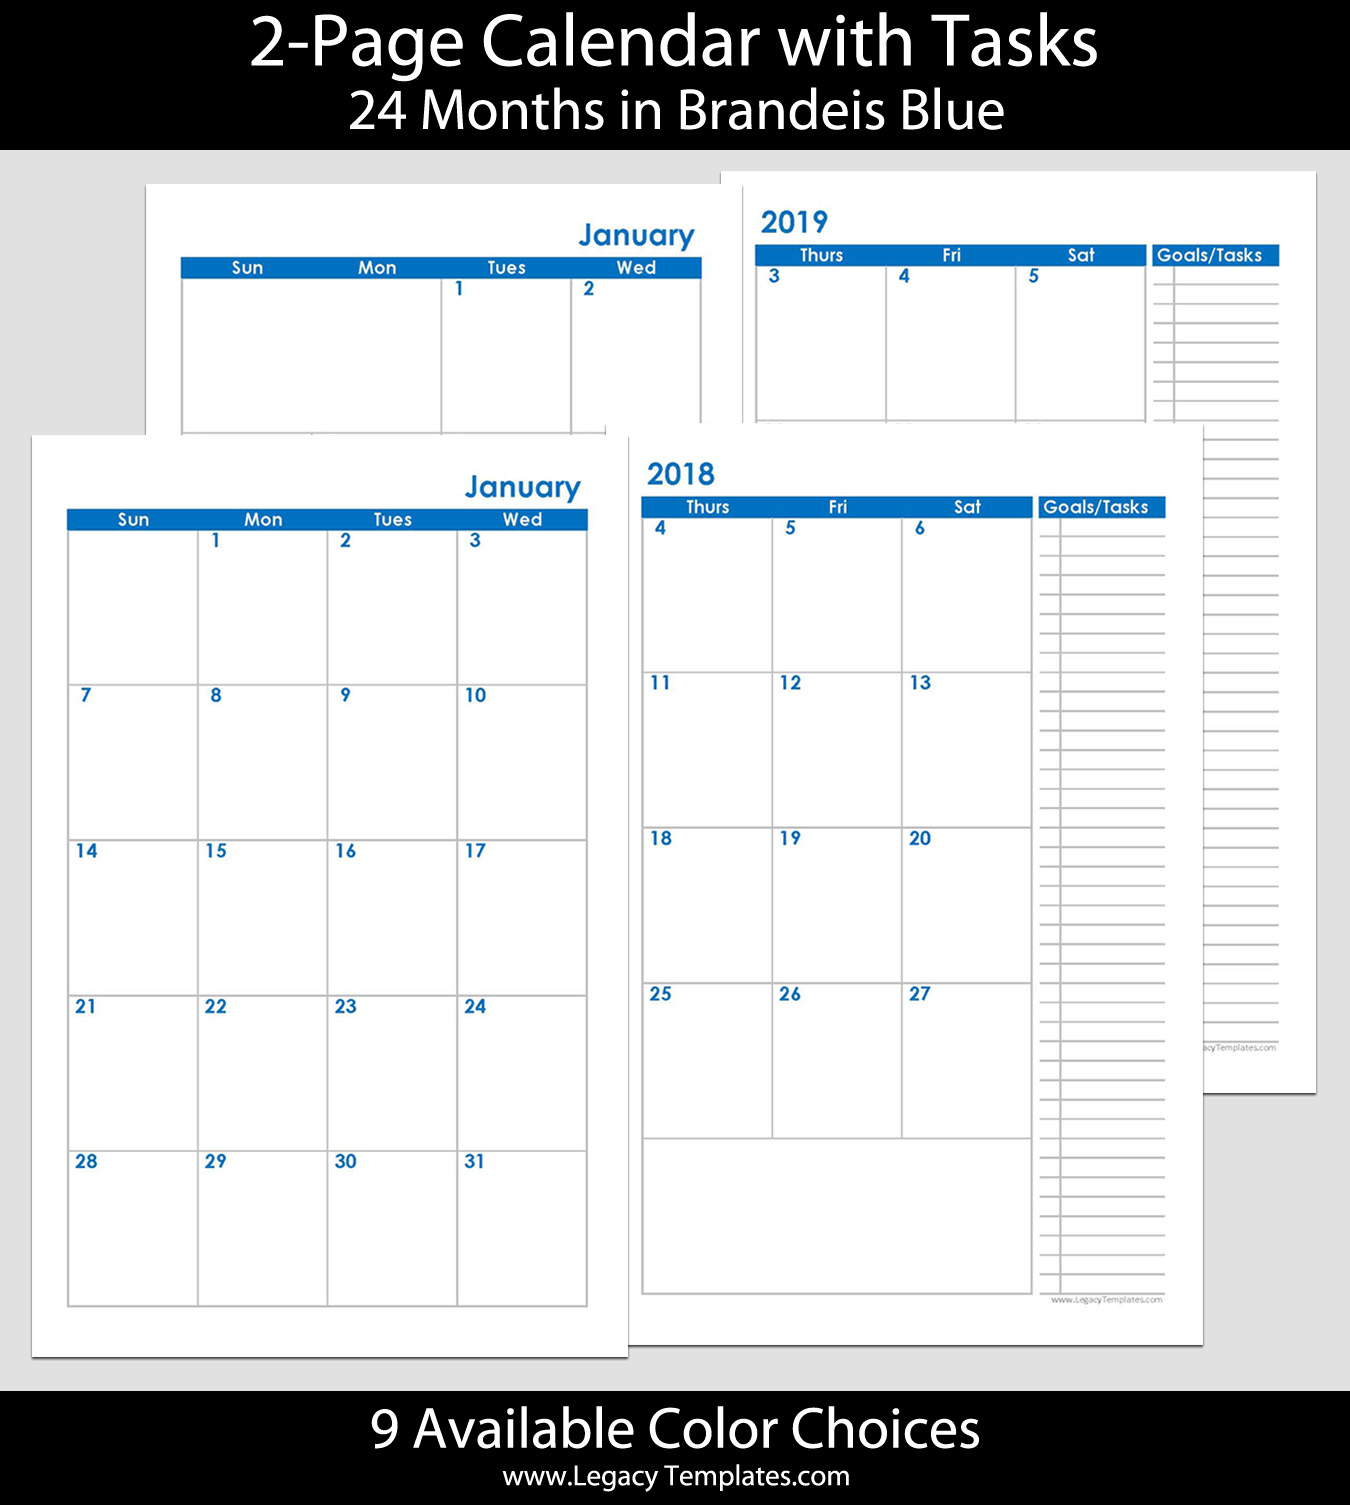 2018 & 2019 24-Months 2-Page Calendar – 5.5 x 8.5 | Legacy ...